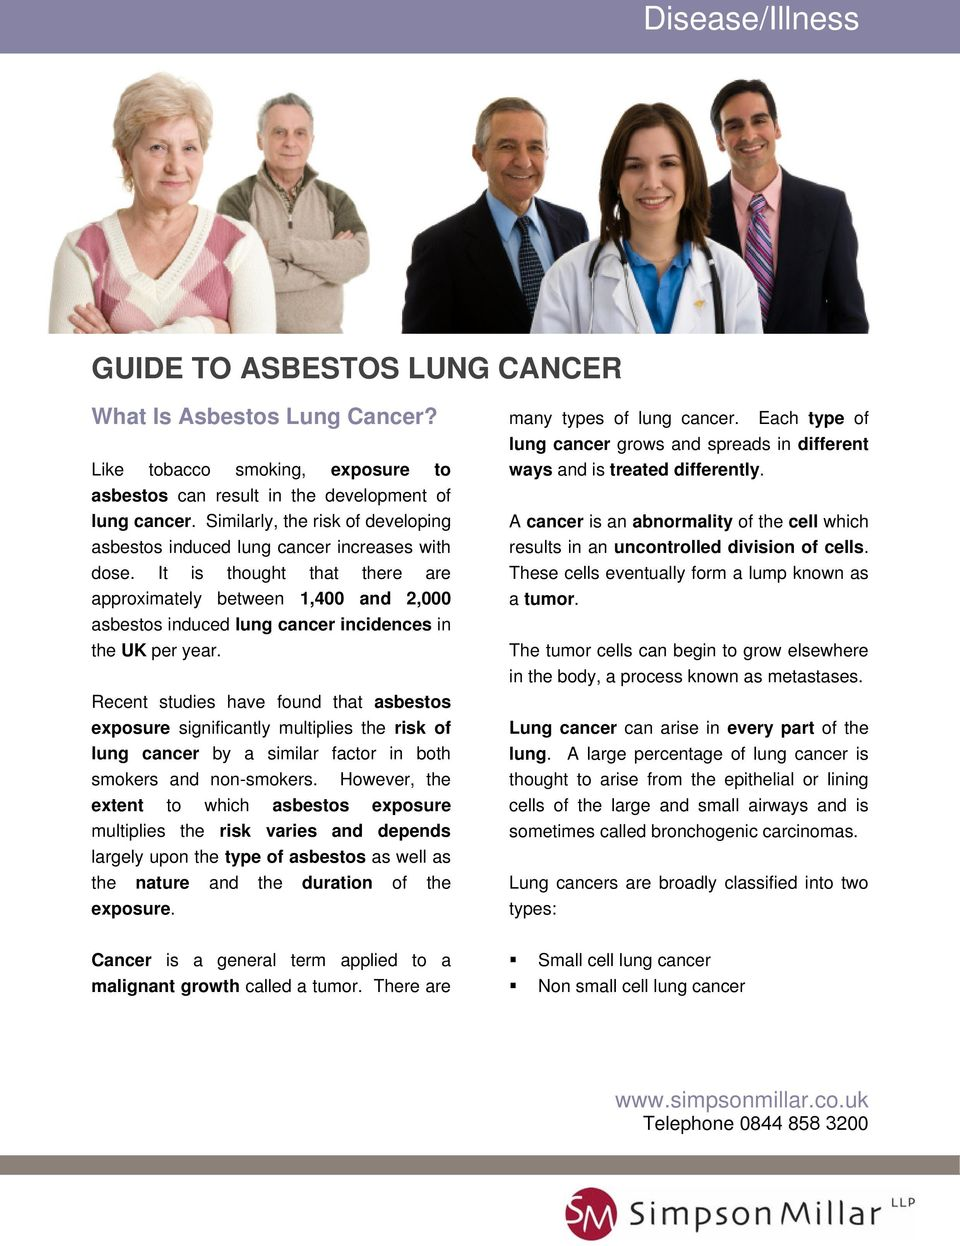 It is thought that there are approximately between 1,400 and 2,000 asbestos induced lung cancer incidences in the UK per year.